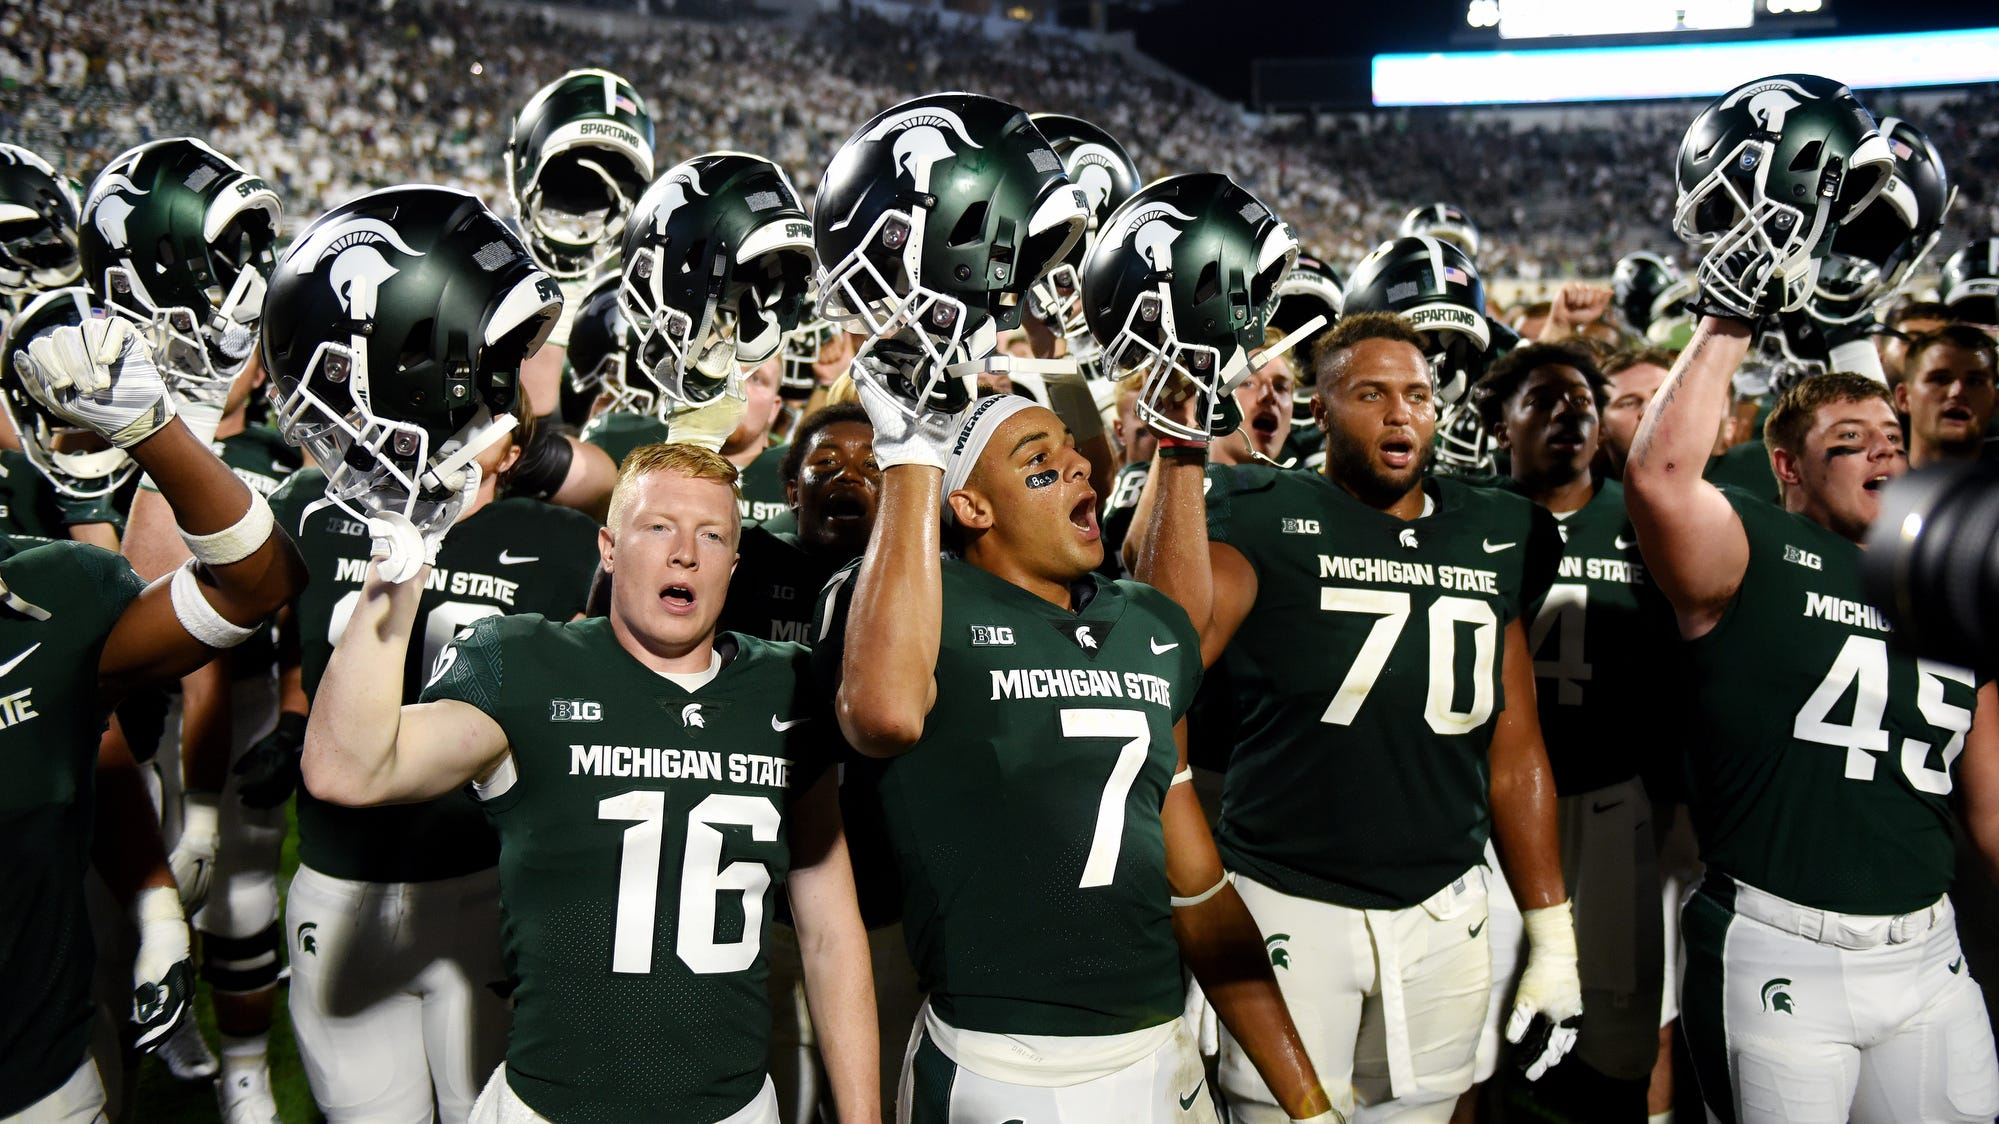 Michigan State Football Schedule 2018 Game Results Recaps